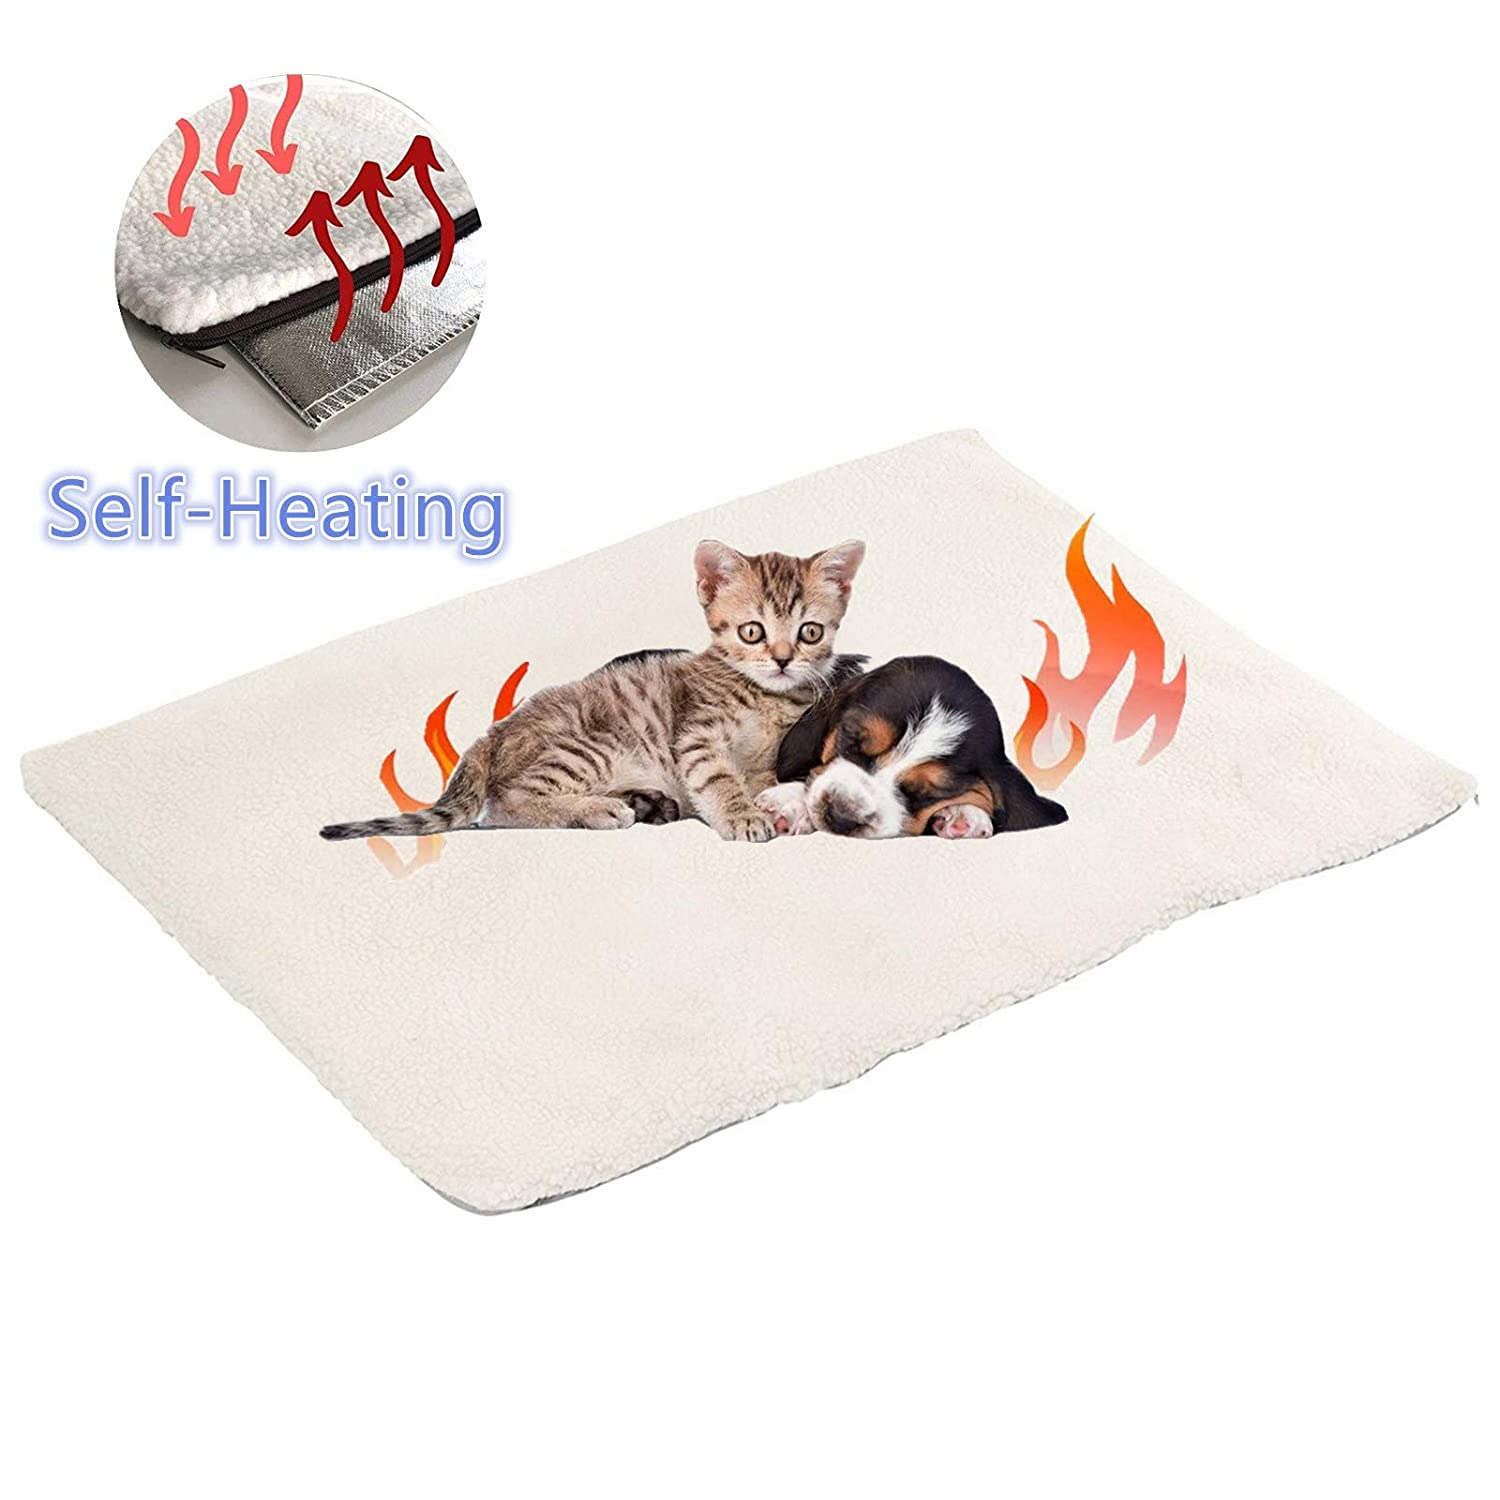 Klemon Self Heating Pet Pads Pet Blanket for Cat/Dog,Pet Heating Pad,Self Warming Cushion Mat for Cats Dogs,Self Heated Cat Dog Bed/Pet Thermal Mat Blanket Ecological